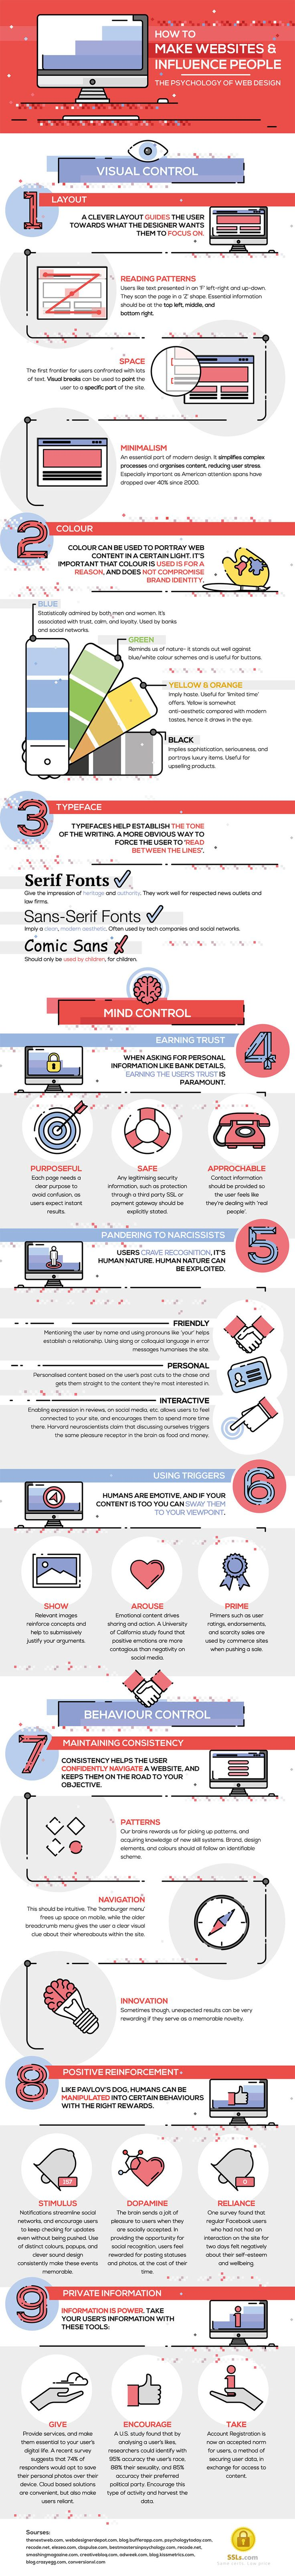 How to Make Websites and Influence People – Infographic